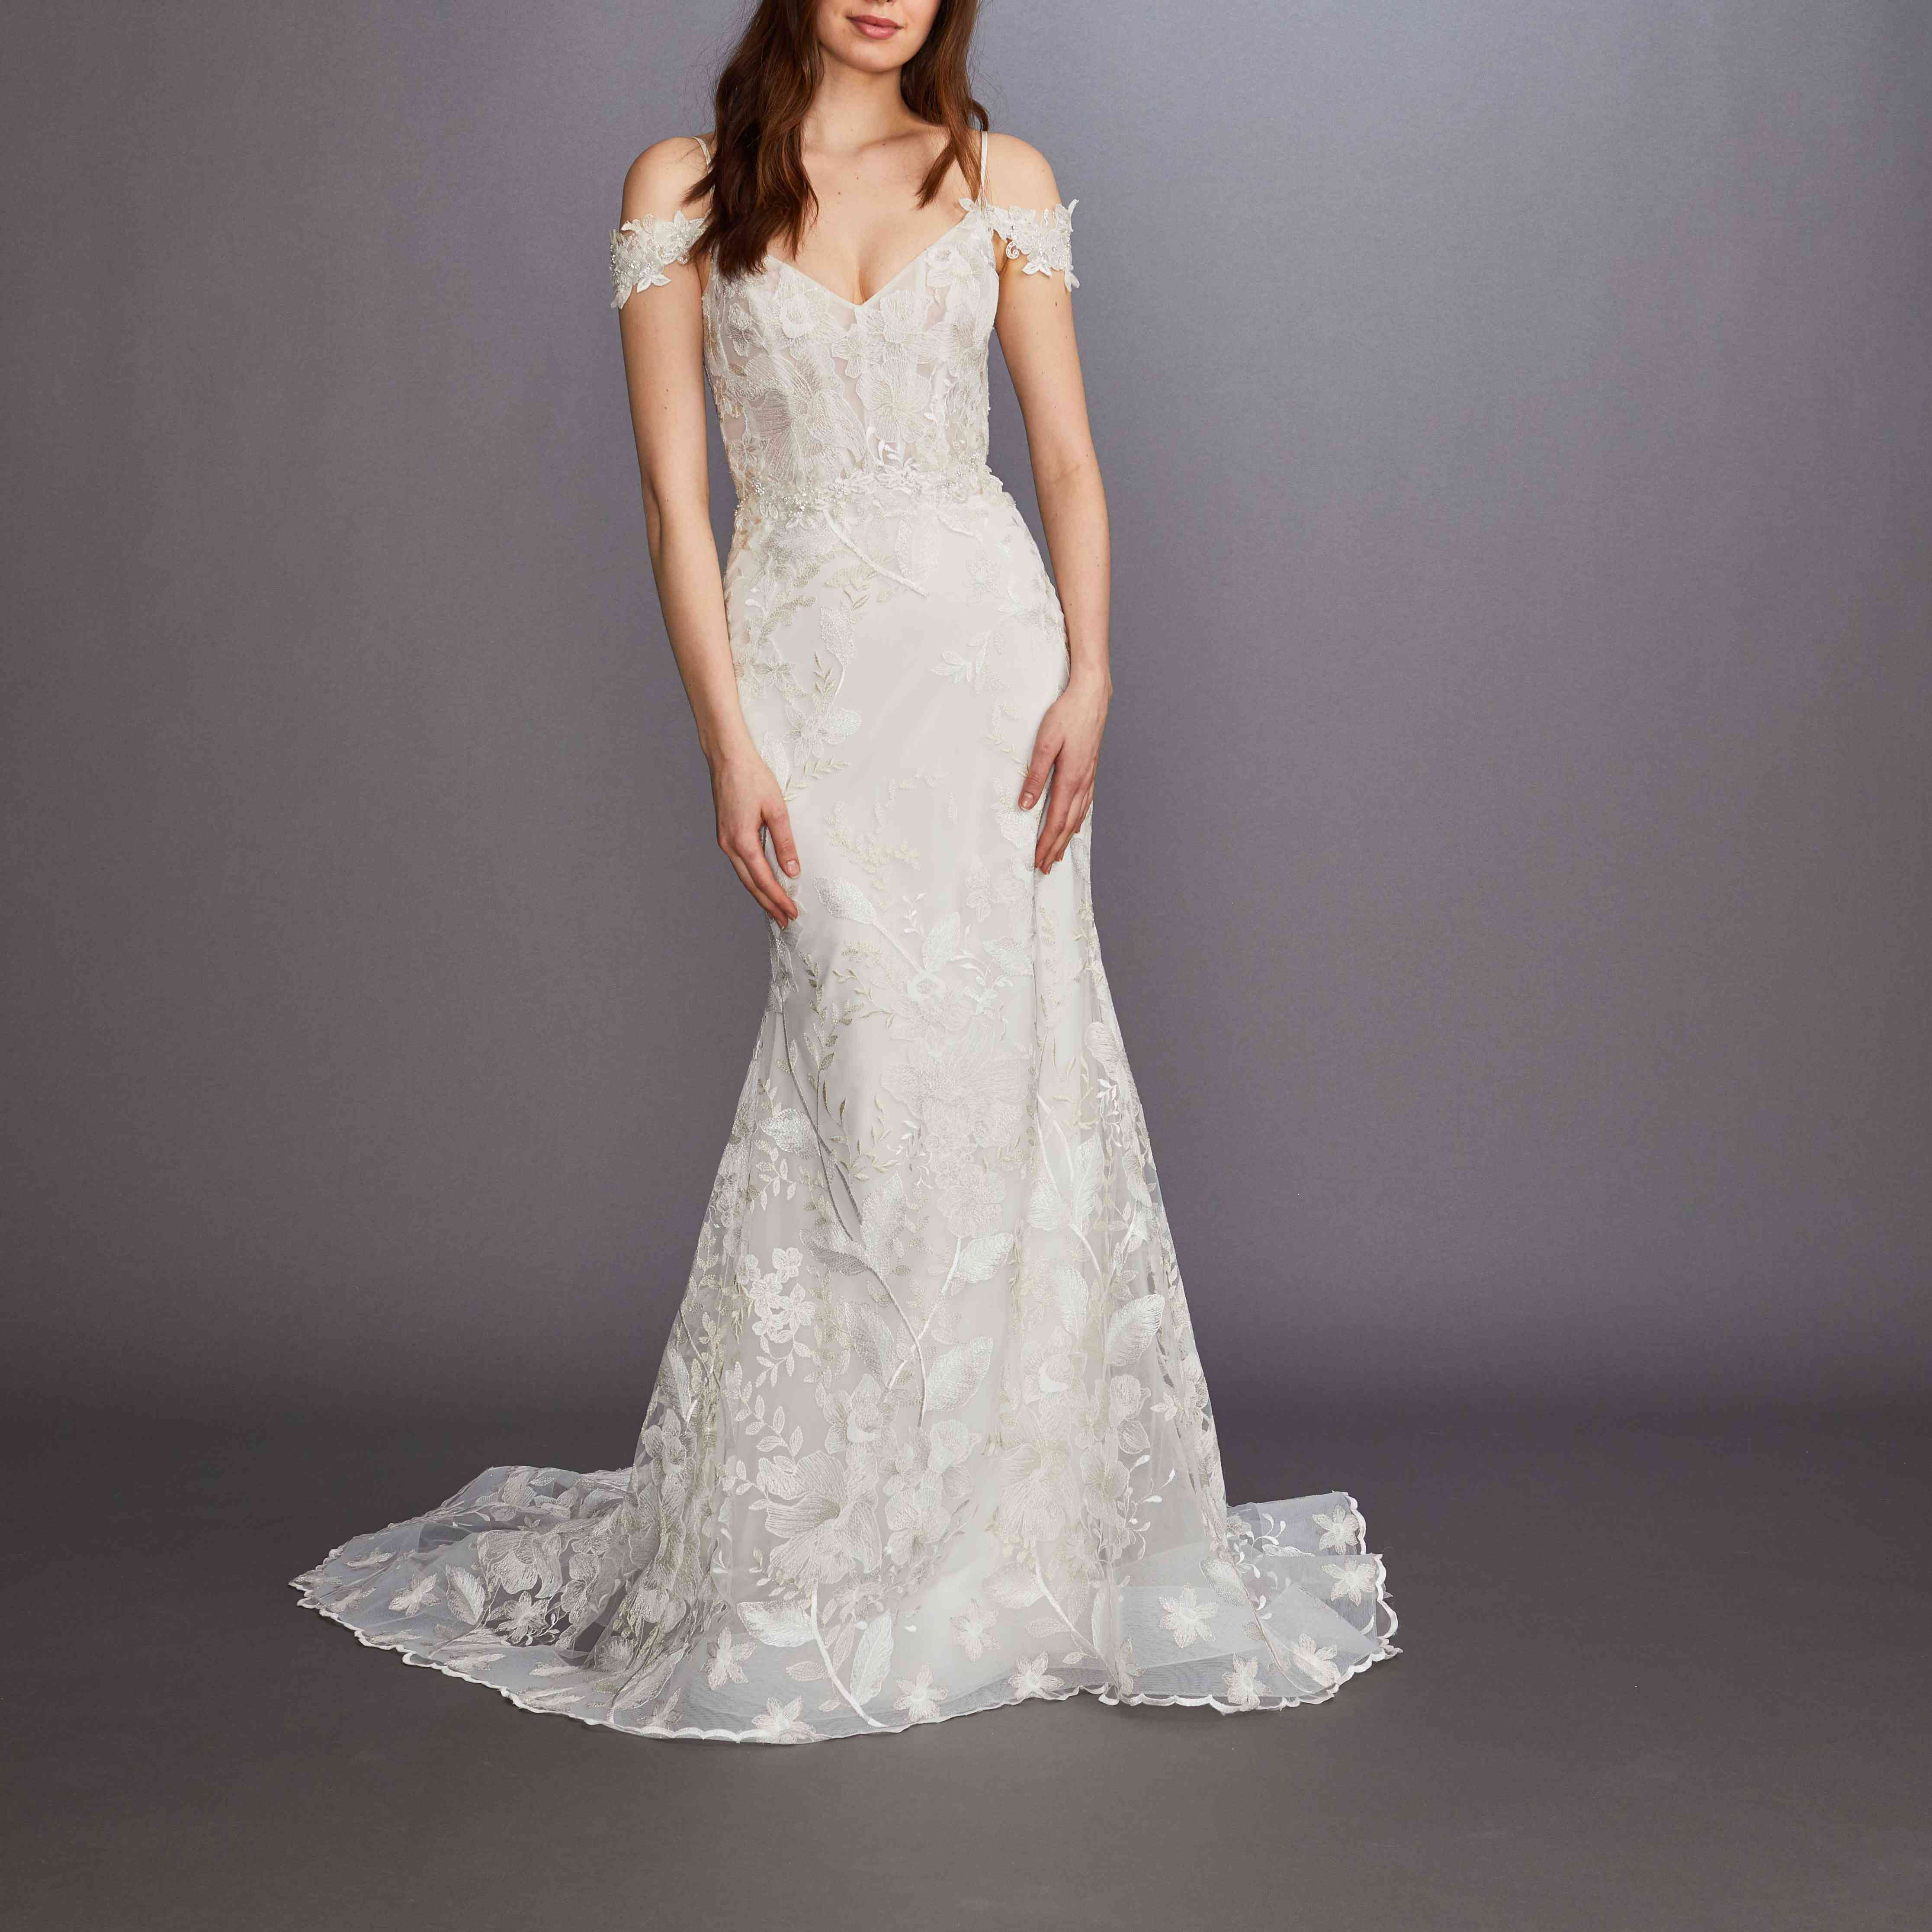 Juniper off-the-shoulder fit-and-flare wedding dress by Lazaro